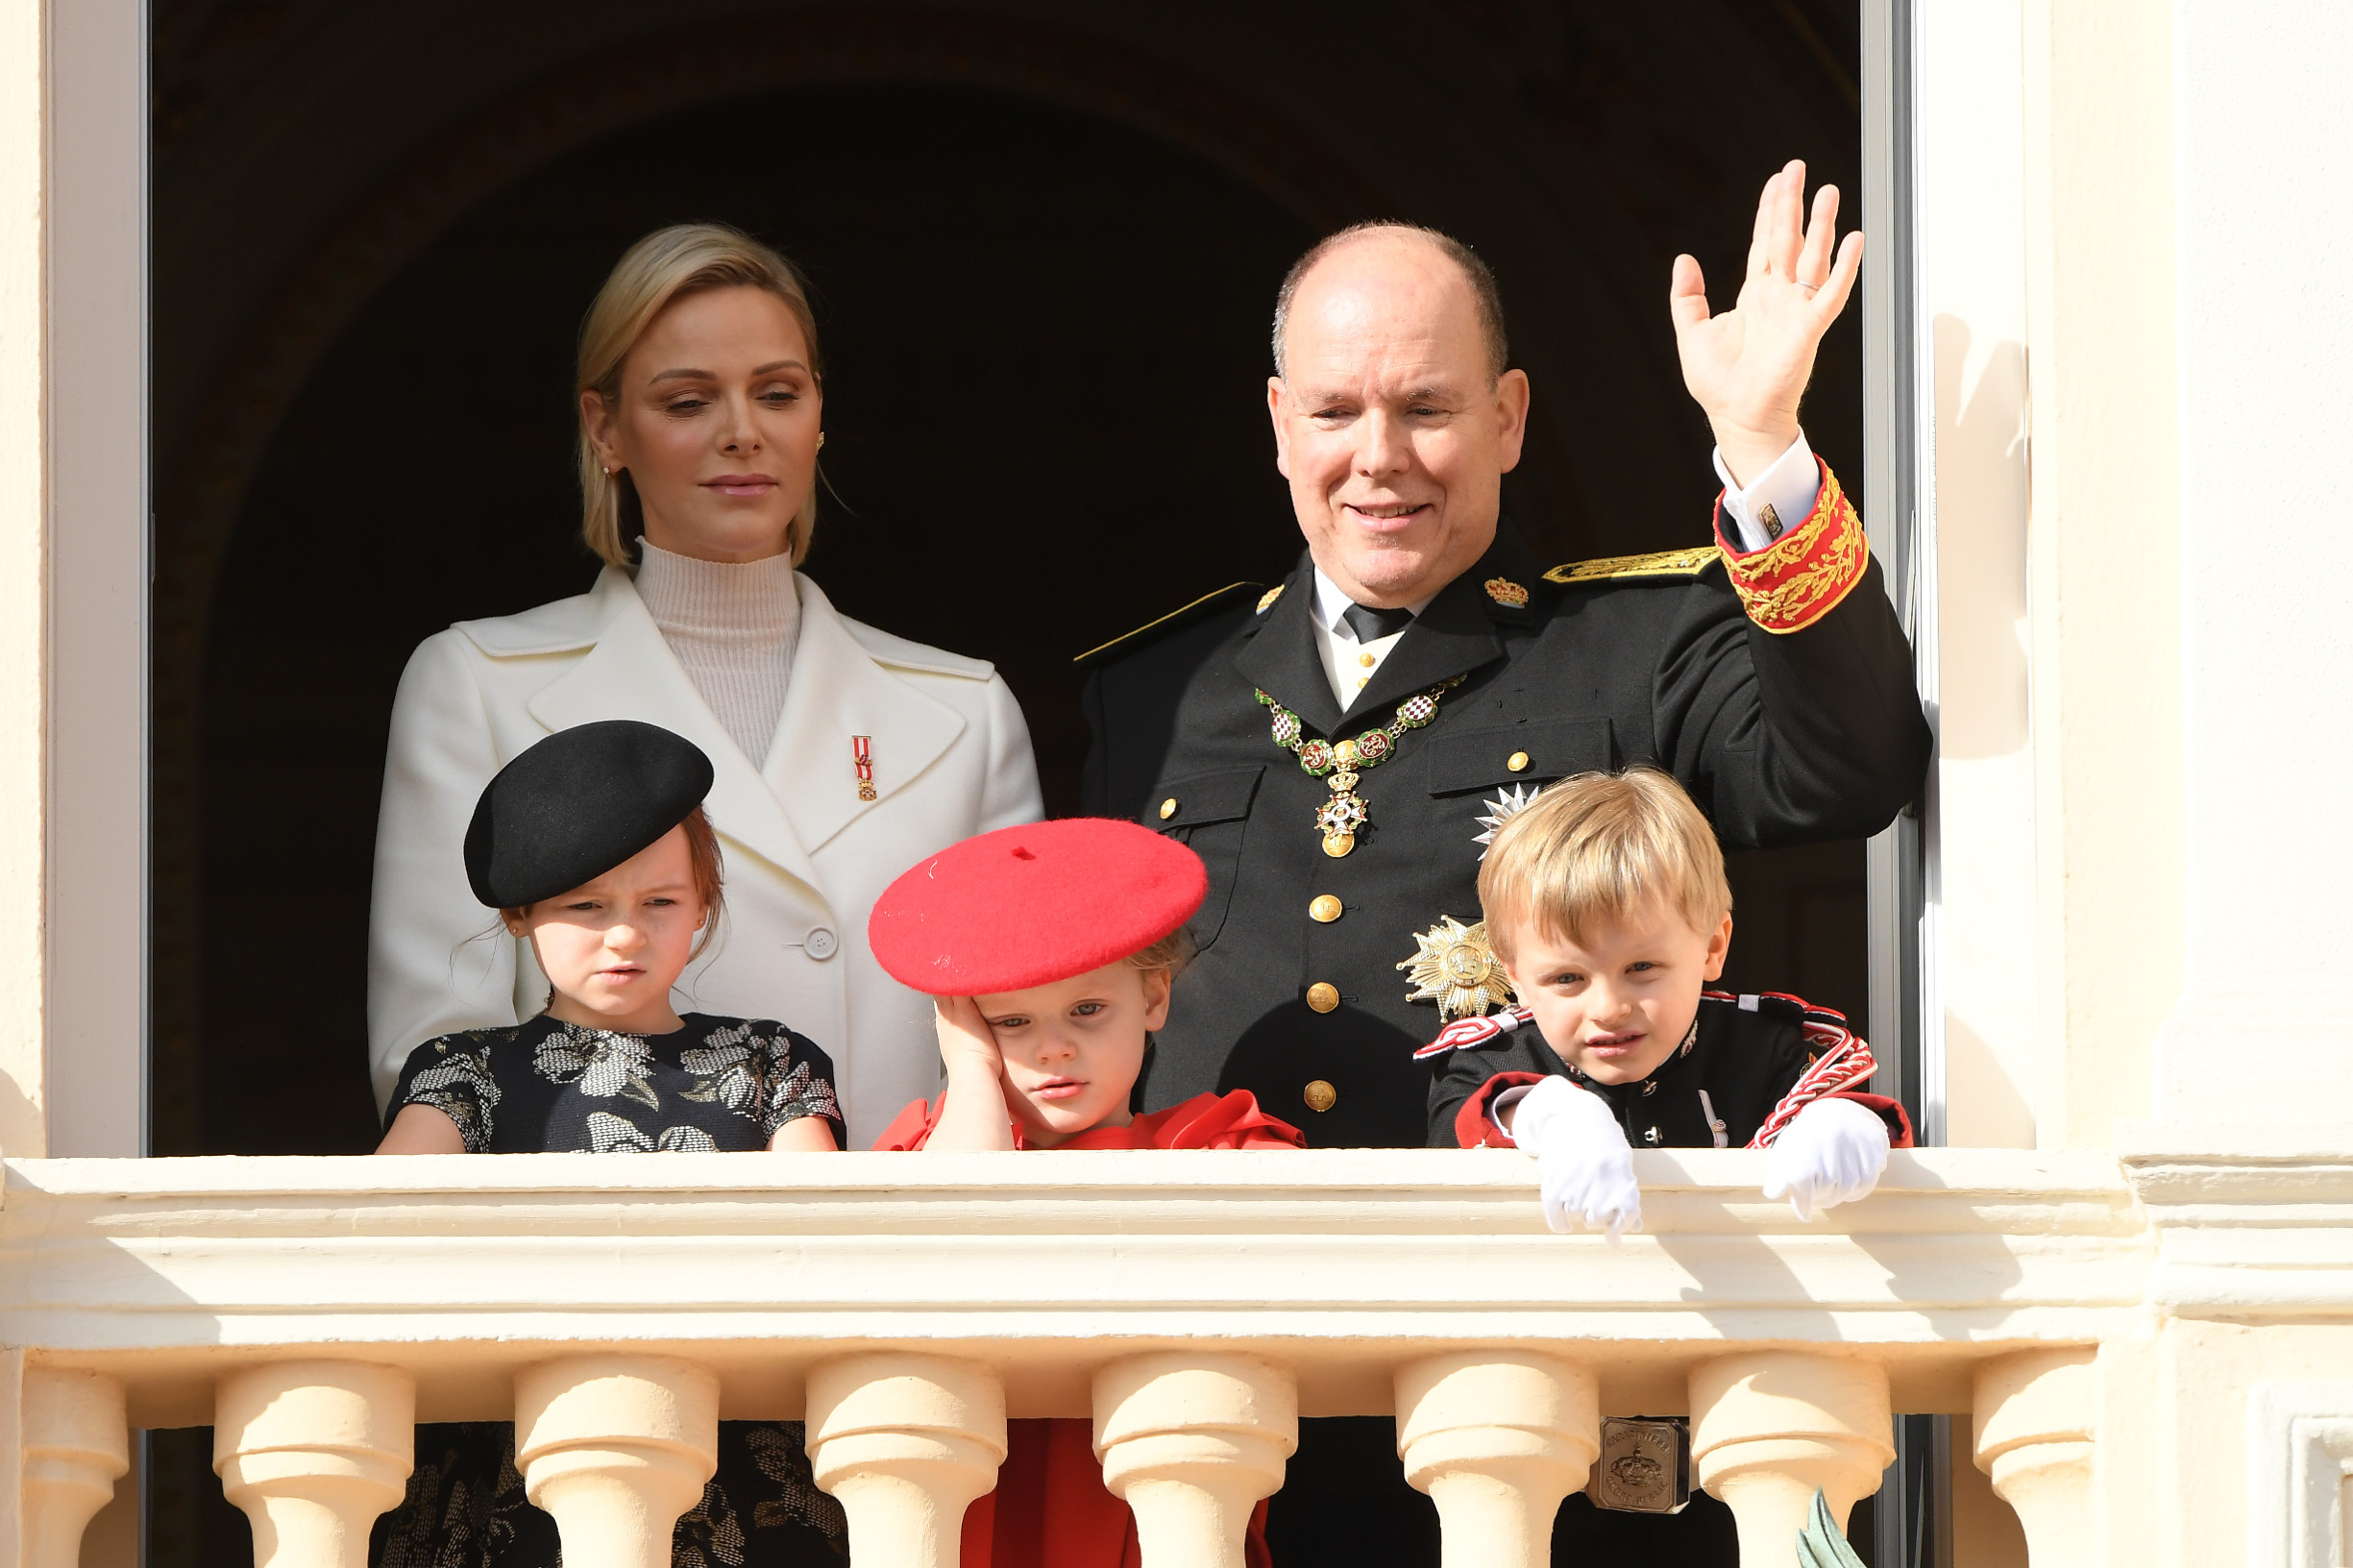 MONTE-CARLO, MONACO - NOVEMBER 19: (L-R) Princess Charlene of Monaco, Prince Albert II of Monaco, Kaia-Rose Wittstock, Prince Gabriella of Monaco and Prince Jacques of Monaco pose at the Palace balcony during the Monaco National Day Celebrations on November 19, 2019 in Monte-Carlo, Monaco. (Photo by Pascal Le Segretain/Getty Images)